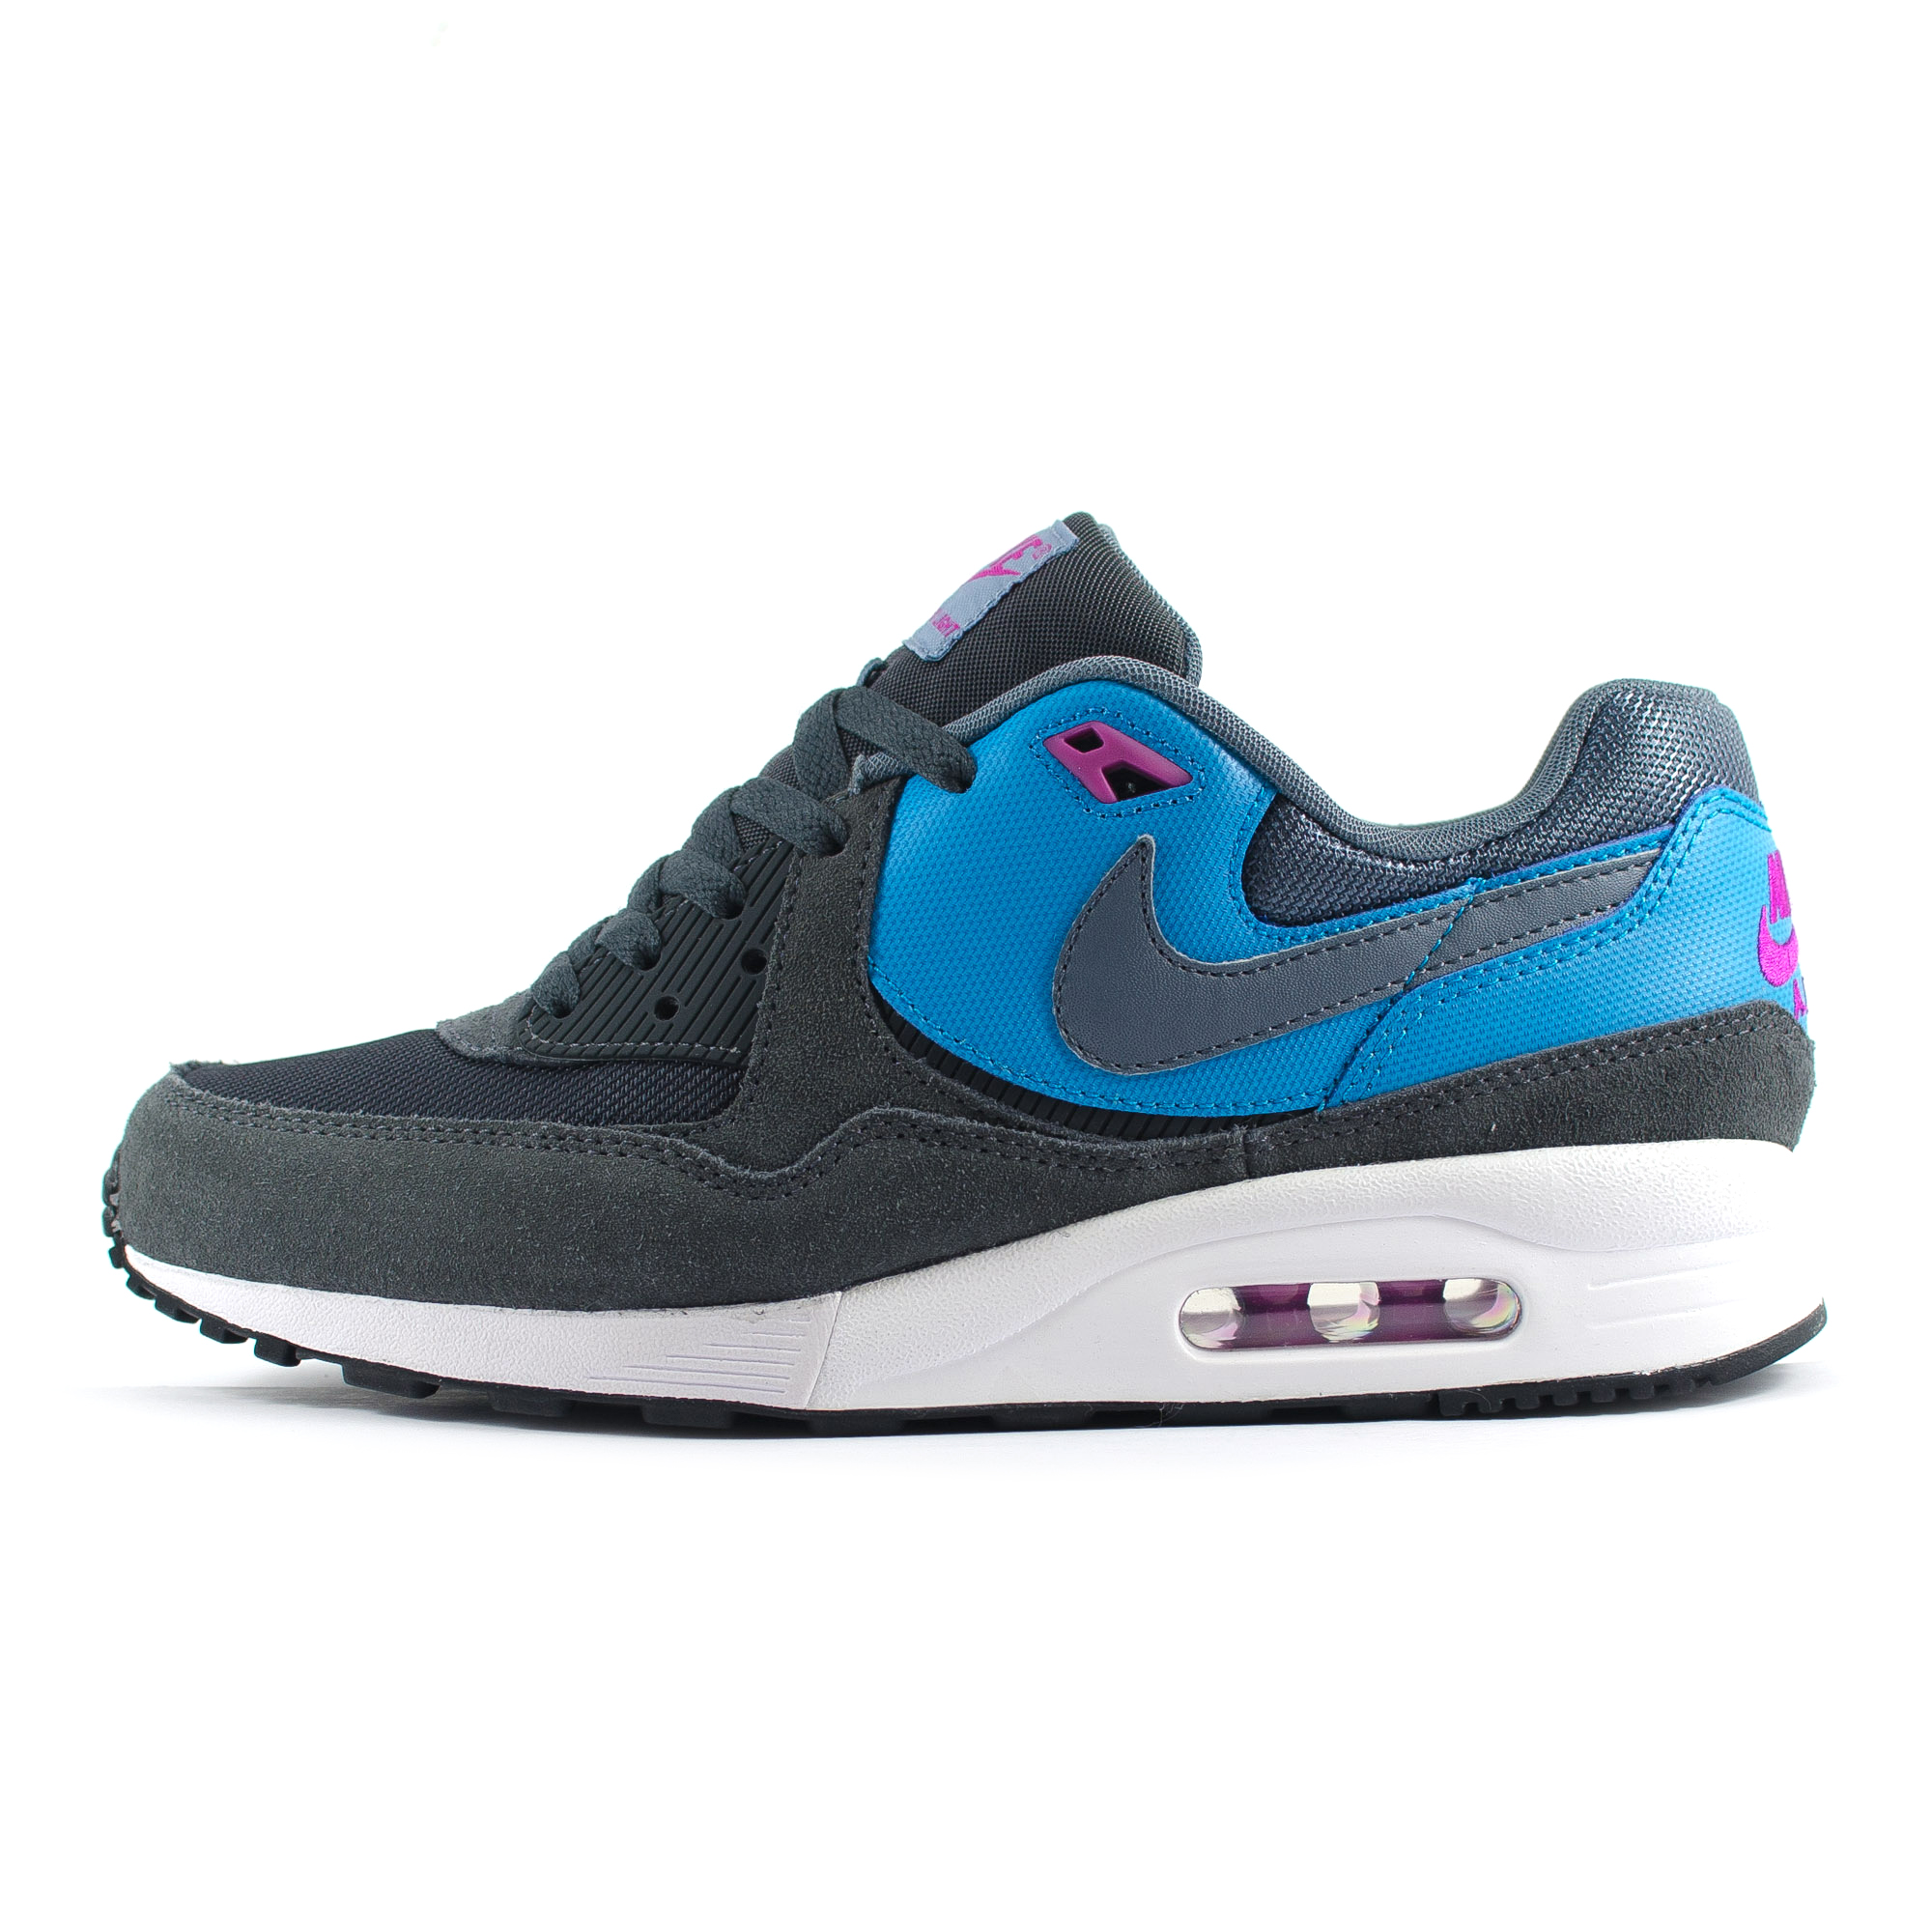 nike air max light trainers. Black Bedroom Furniture Sets. Home Design Ideas